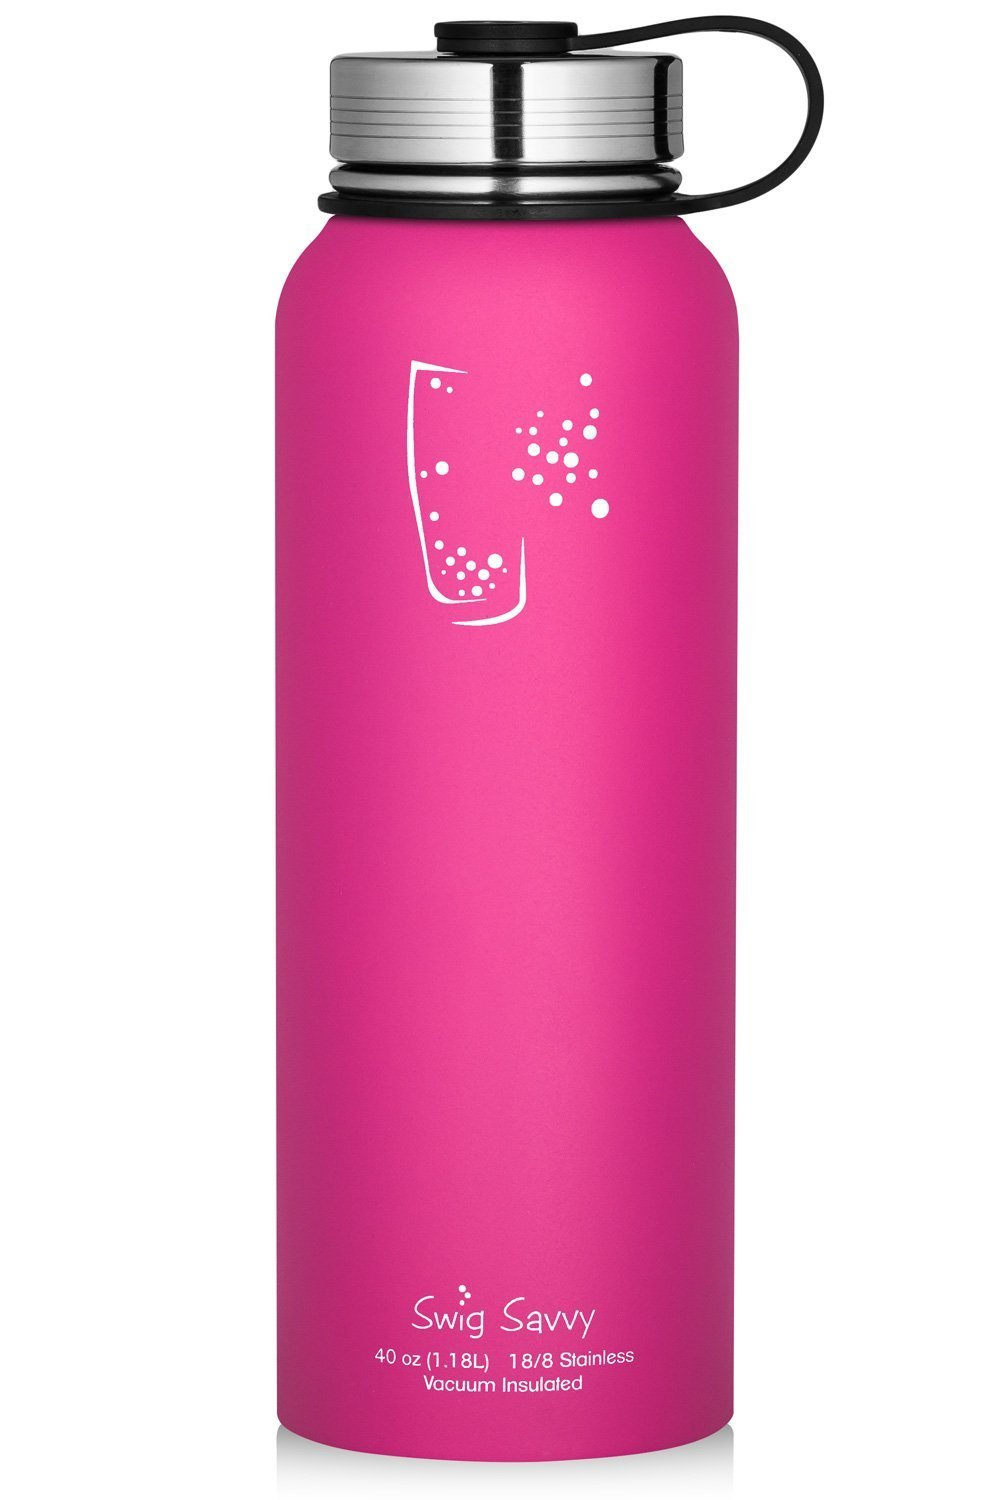 SWIG SAVVY Stainless Steel Sports Water Bottle - with Vacuum Insulated Double Wall & Wide Mouth Leak Proof Cap - Reusable Sweat Proof Thermos Flask for Hot & Cold Drinks - BPA Free - 40oz